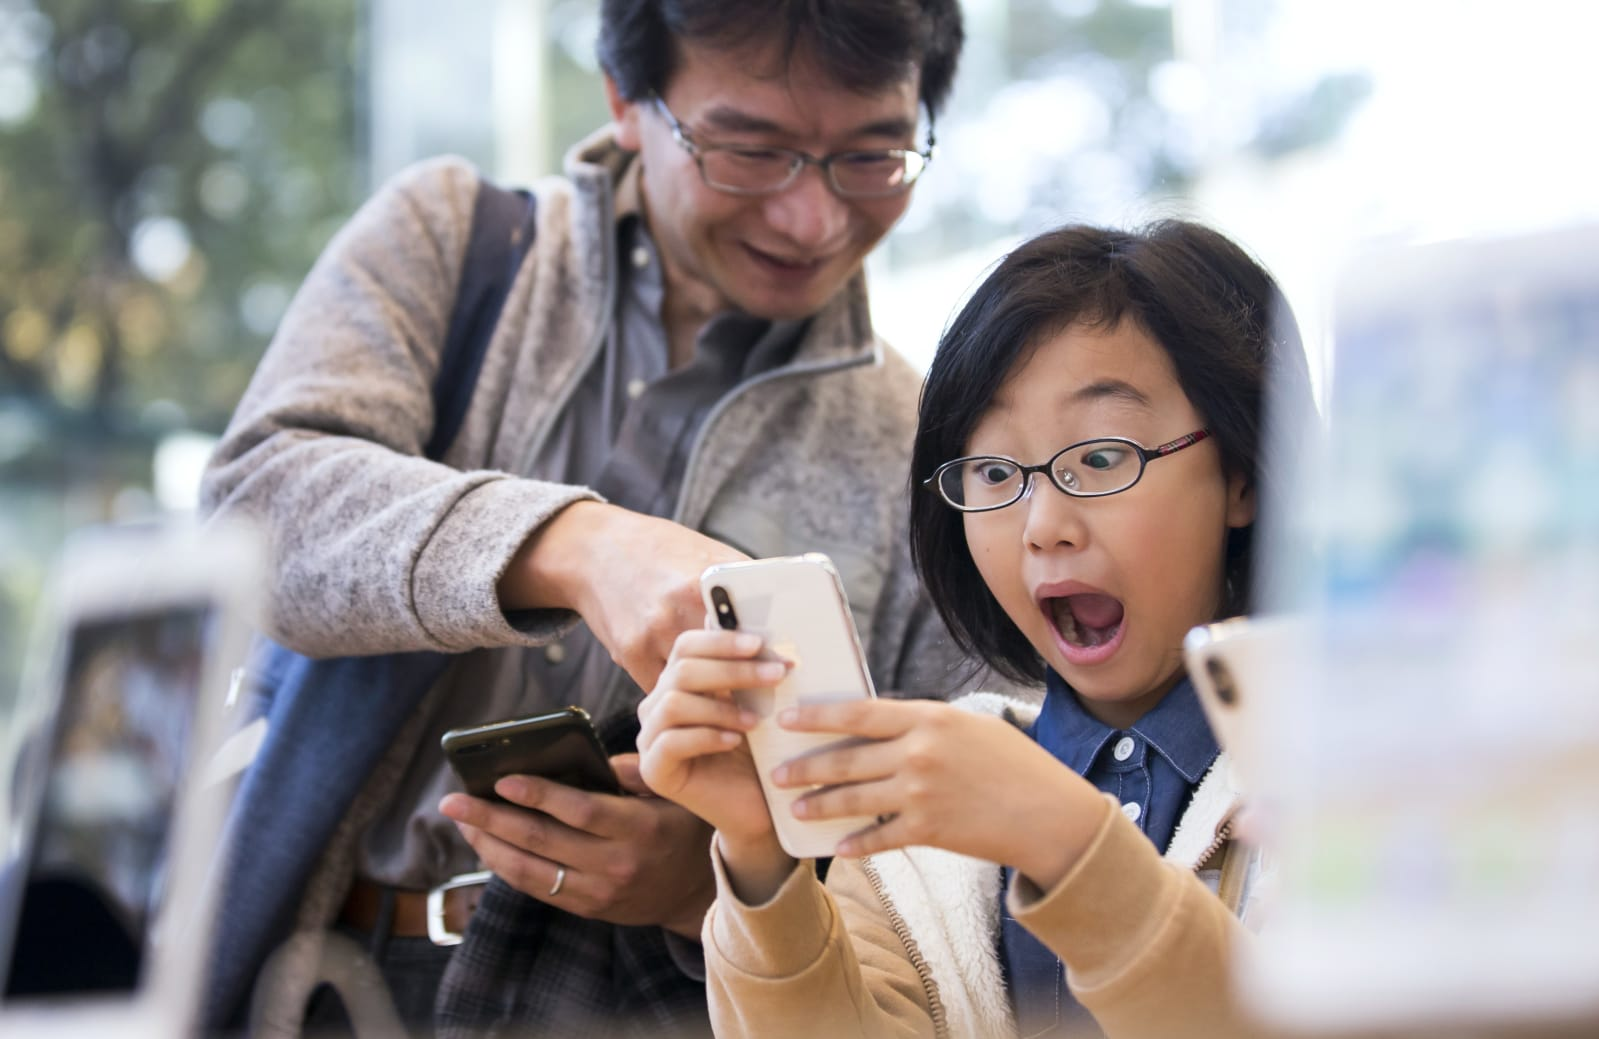 smartphonrs hurting the younger generation